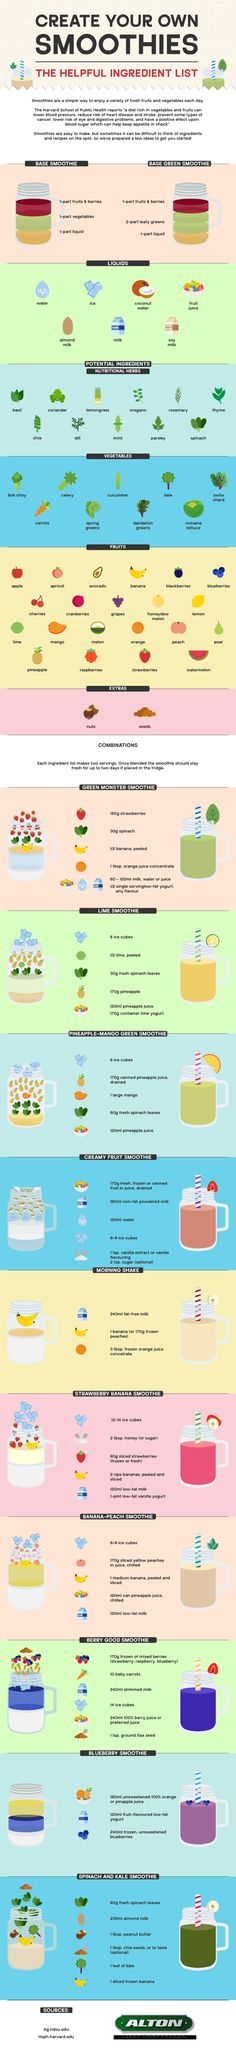 Here's Your Ultimate DIY Healthy Smoothie Guide Homemade Smoothies, Best Smoothie Recipes, Good Smoothies, Smoothie Shop, Smoothie Packs, Pick Me Up, Fruits And Veggies, Cravings, Vitamins